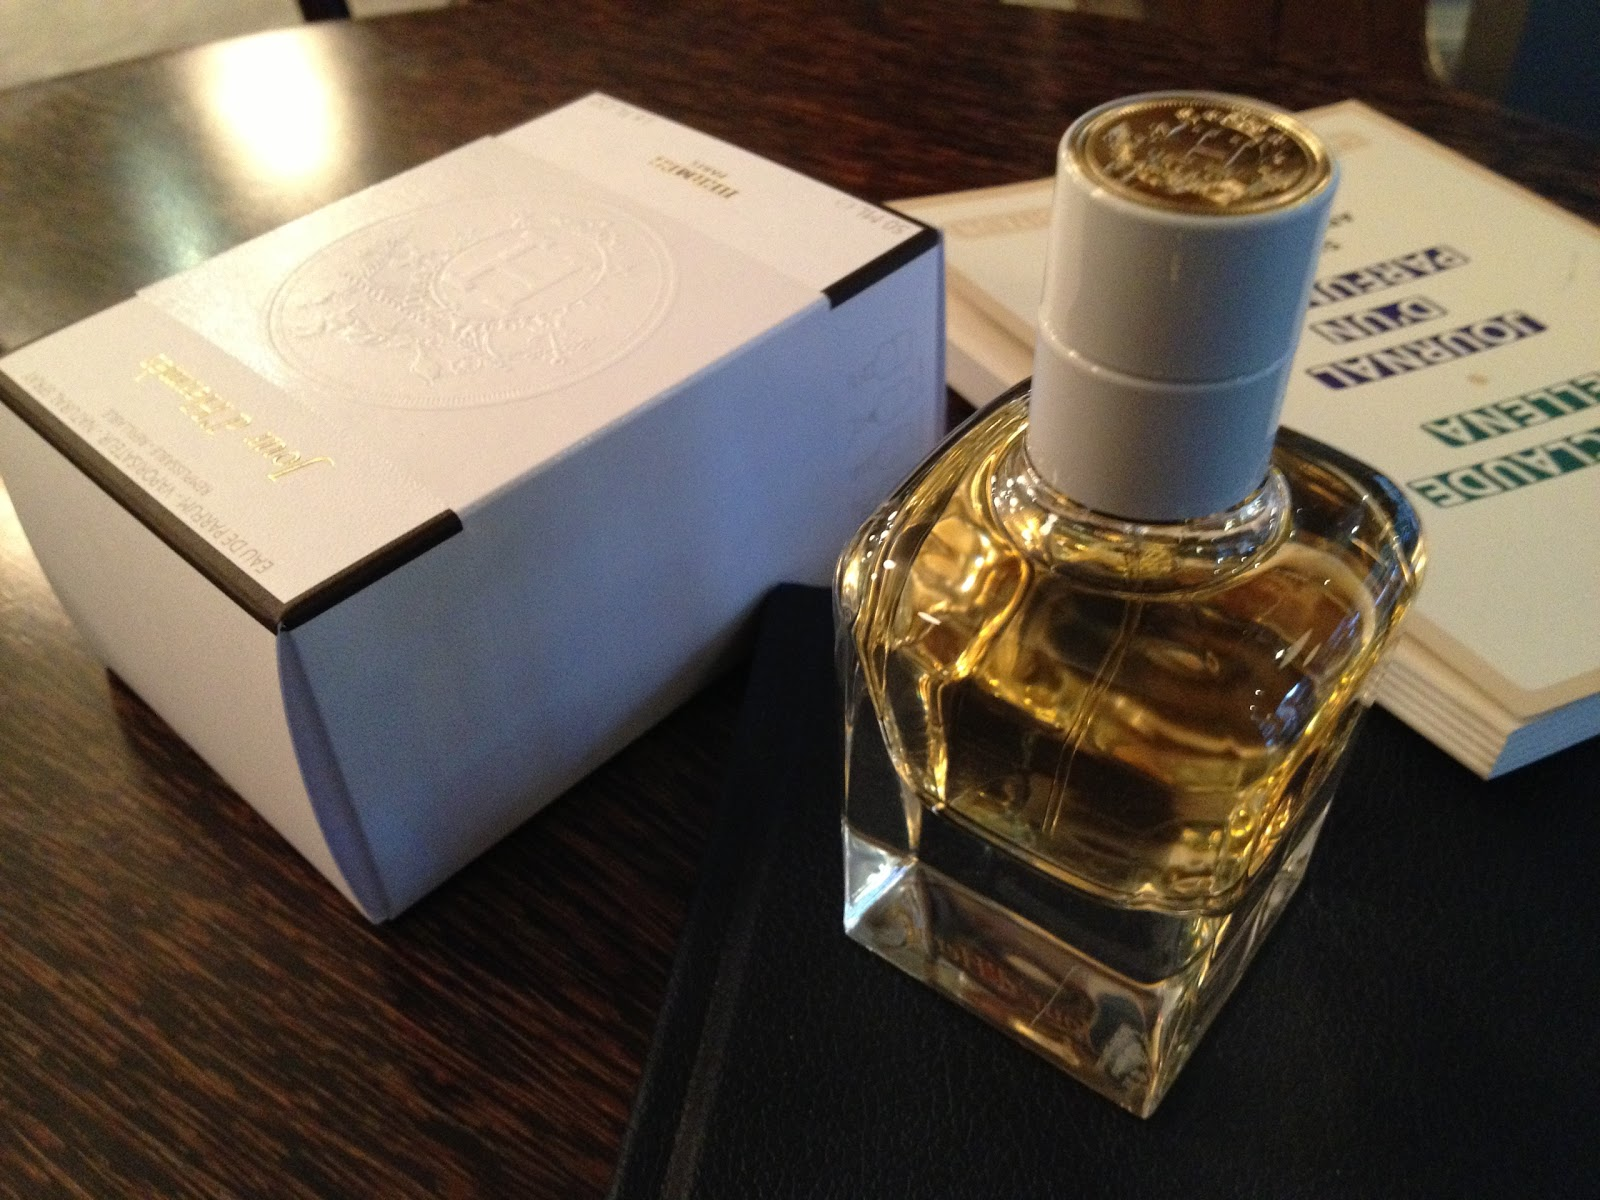 perfume shrine  hermes jour d hermes fragrance review insights into fragrance creation